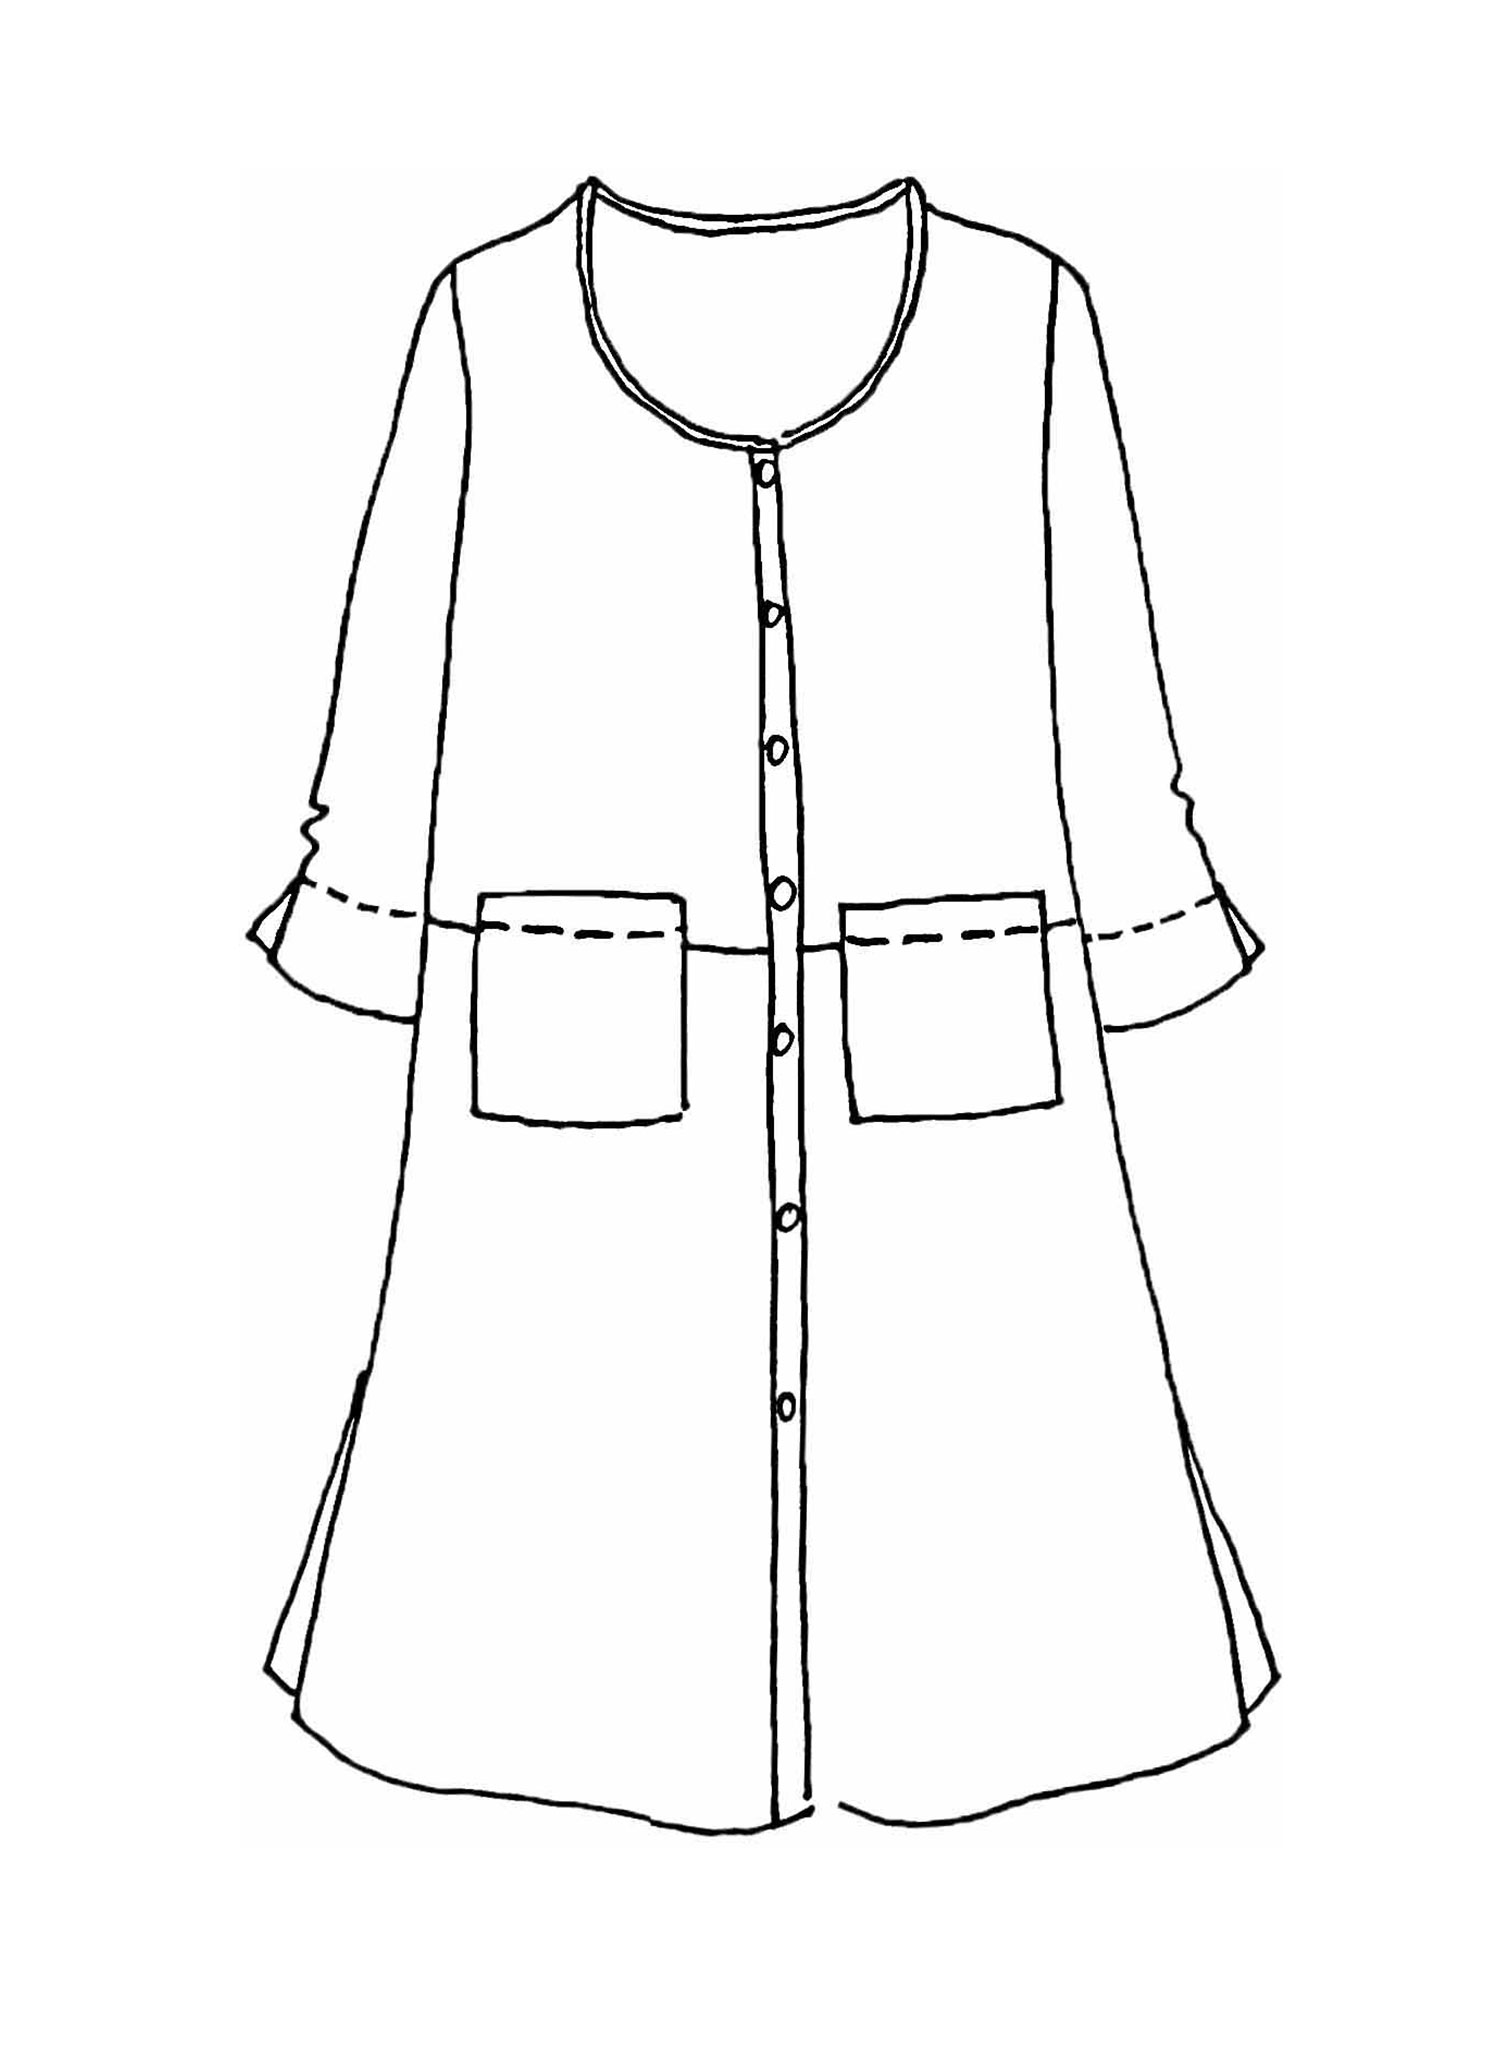 Cleanline Duster sketch image